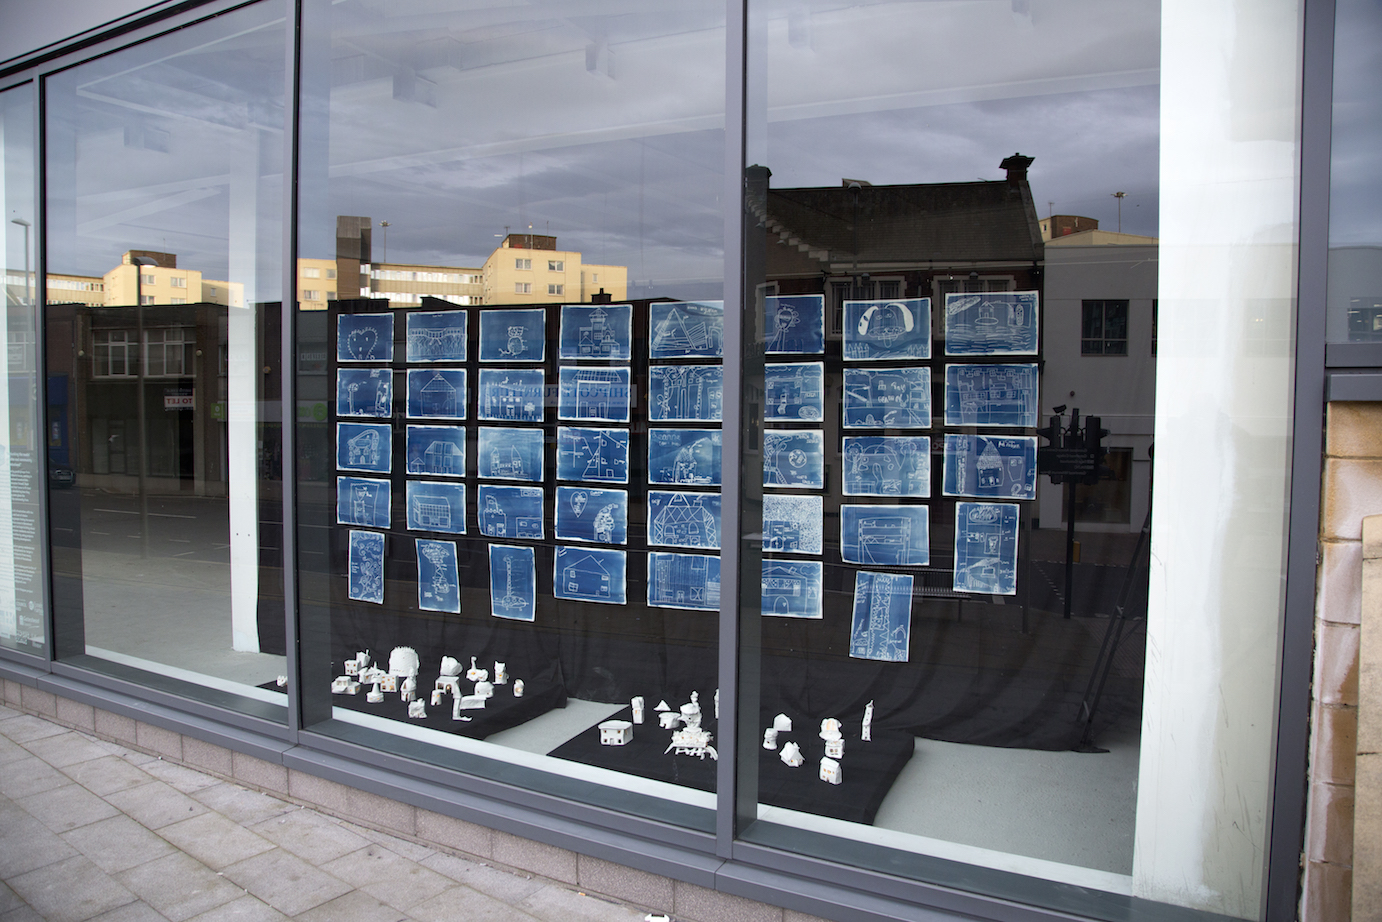 The final work on display in Gateshead town centre, each of the houses is fitted with an LED so it glows at night. This work was on display for 3 months in a vacant shop front, exhibited alongside Judith and I's work.